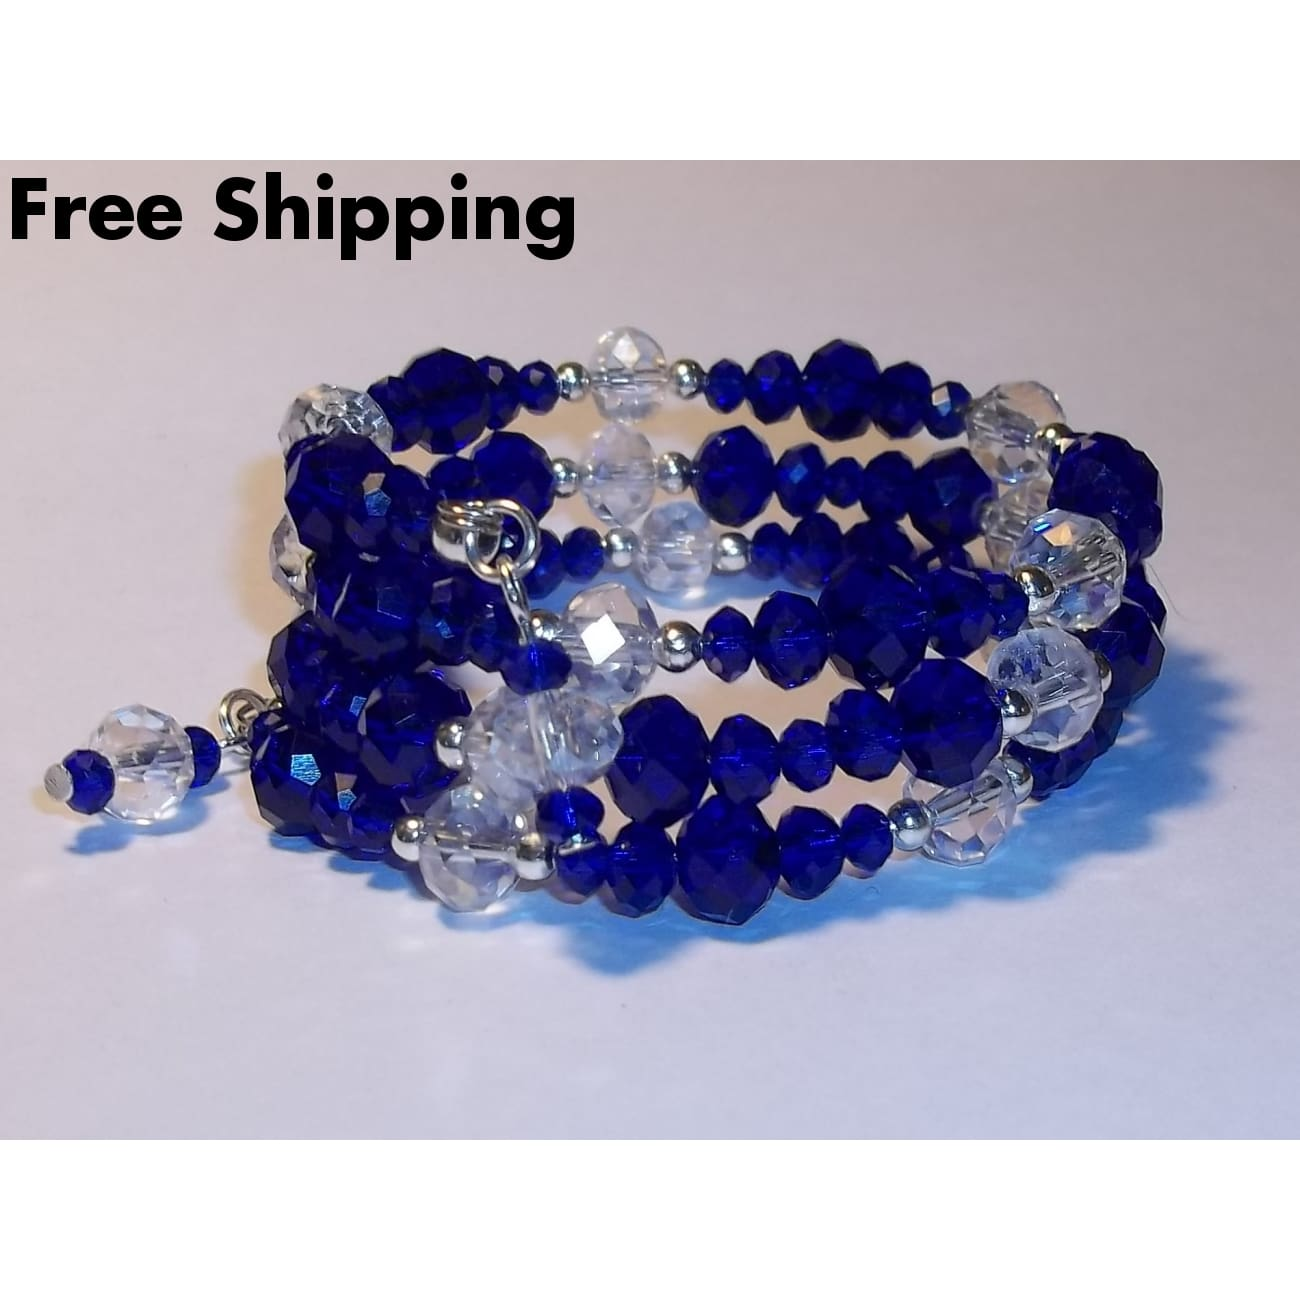 Statement Sapphire Blue & Clear Swarovski Crystal September Birthstone Artisan Crafted Wrap Bracelet (Fits Sz S-M) - New Arrival